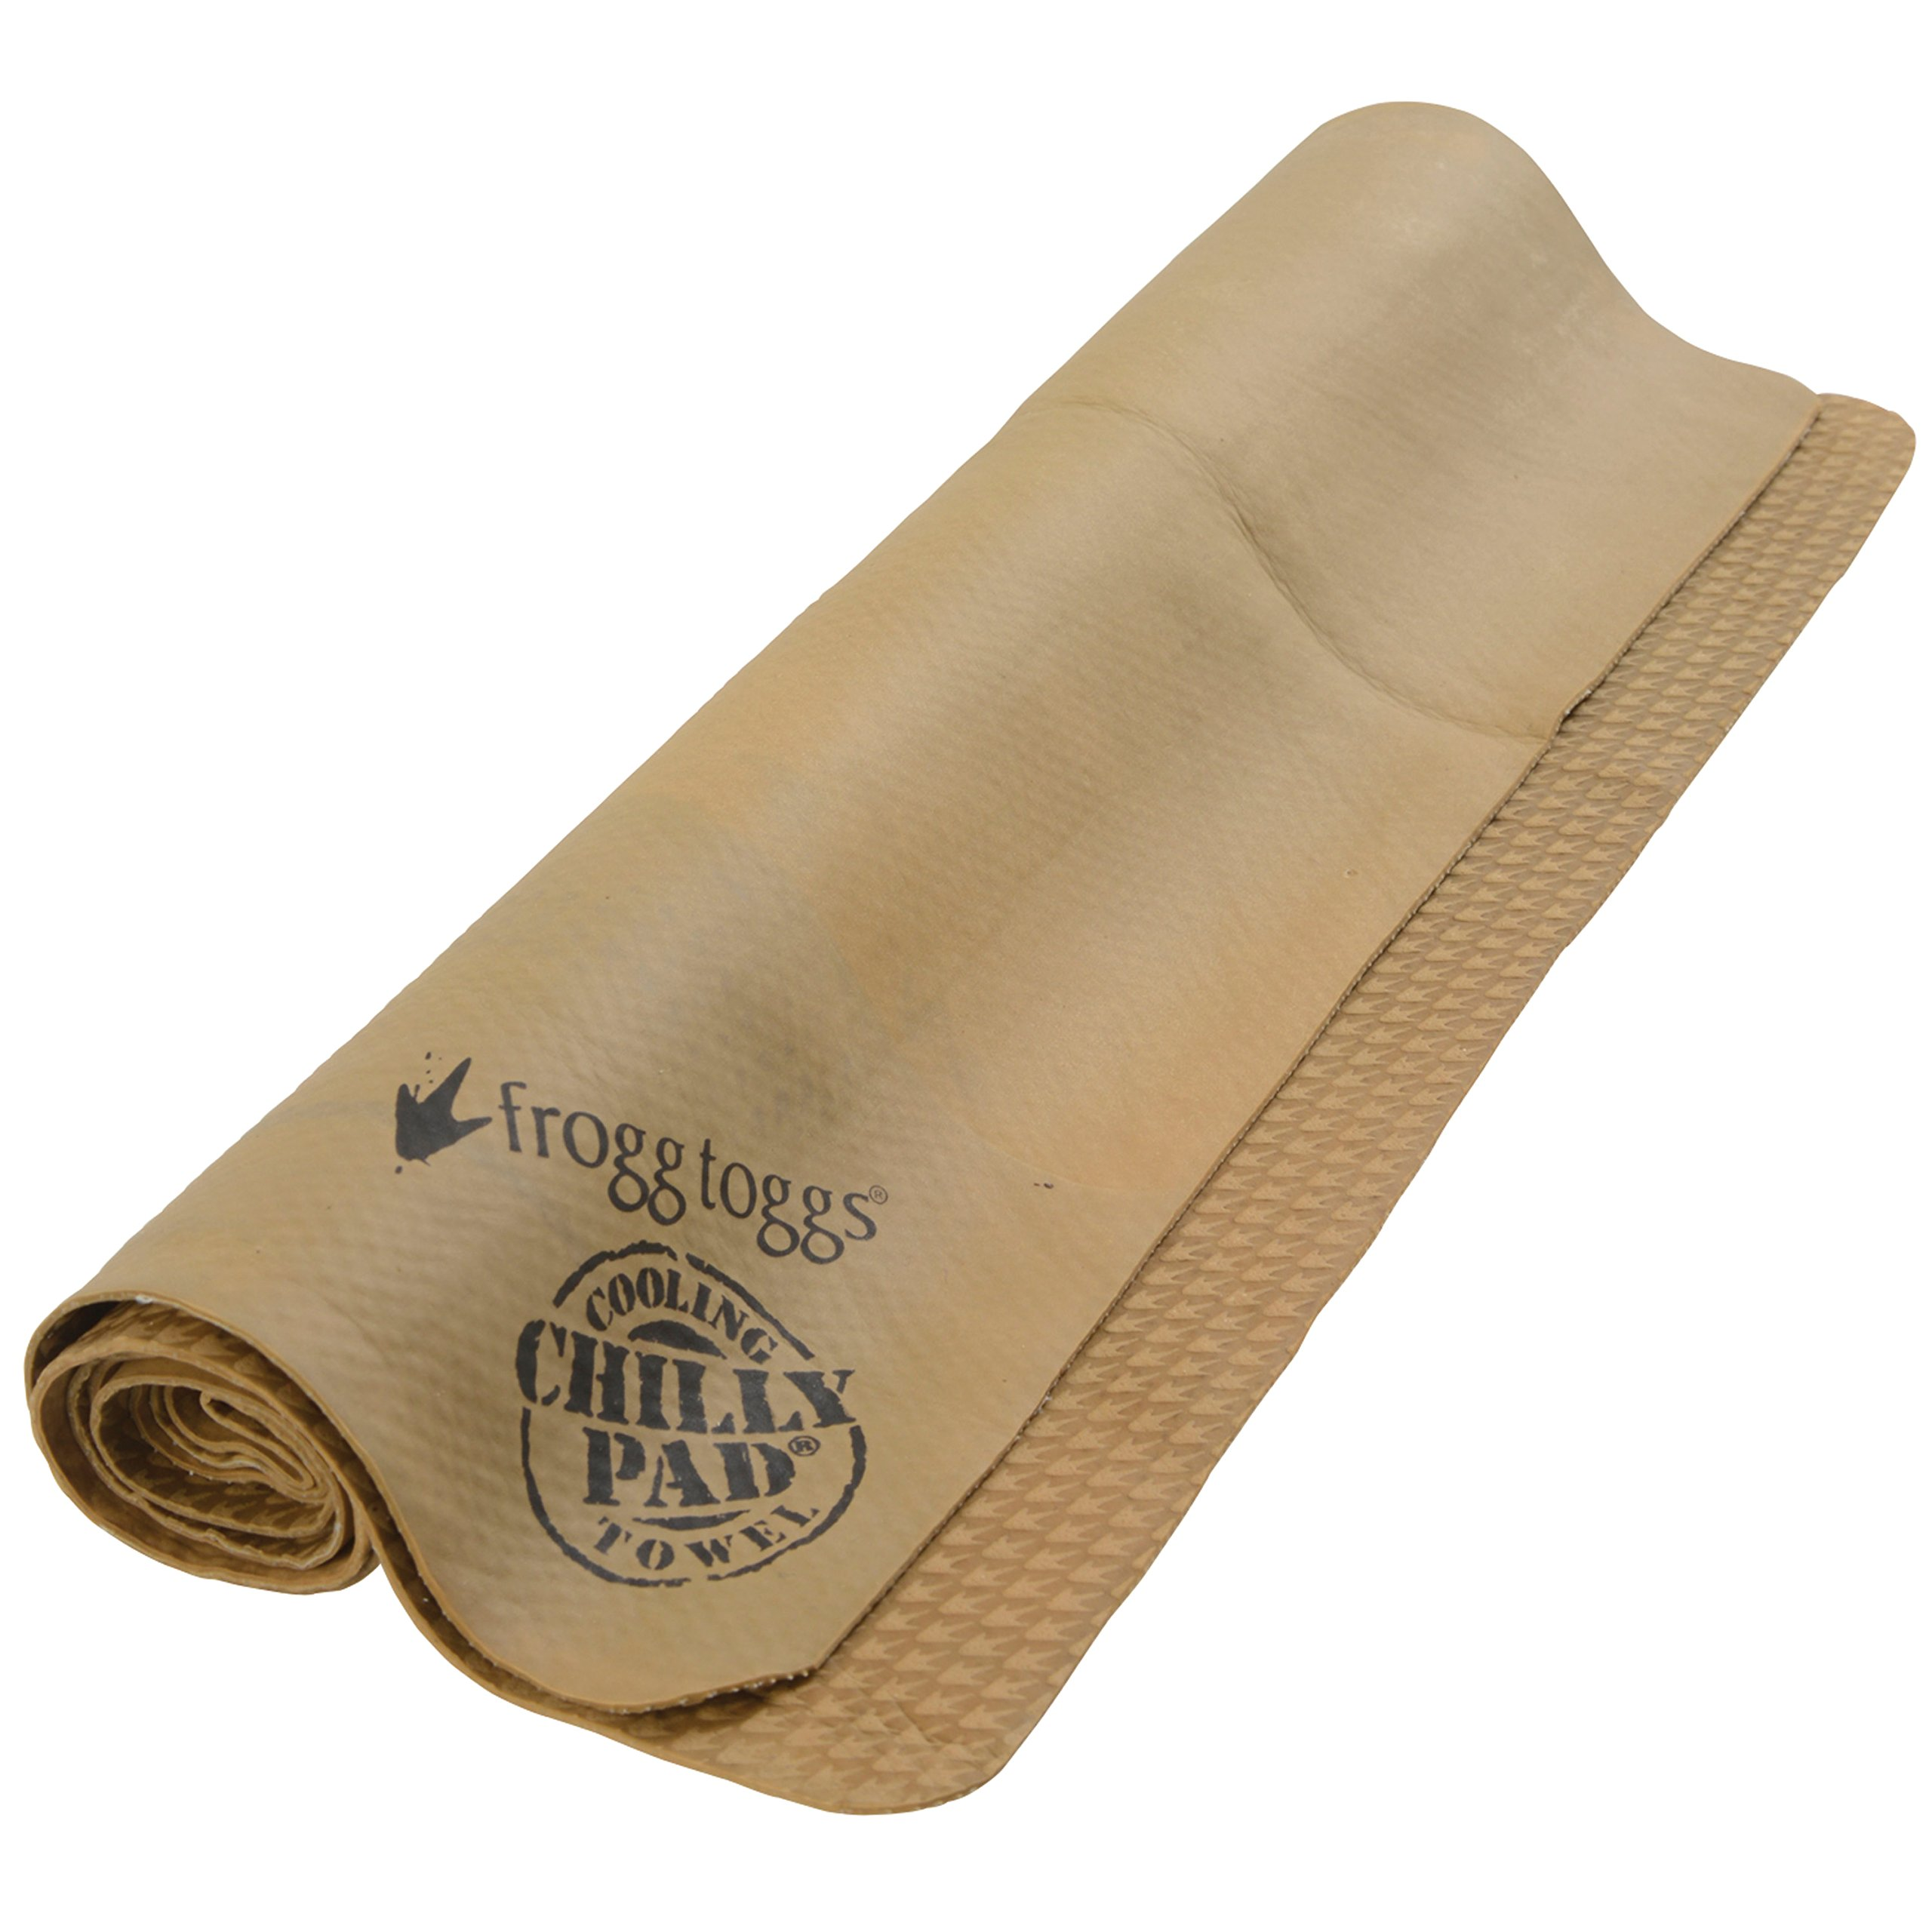 Frogg Toggs Chilly Pad Cooling Towel, Sand, Size 33'' x 13''